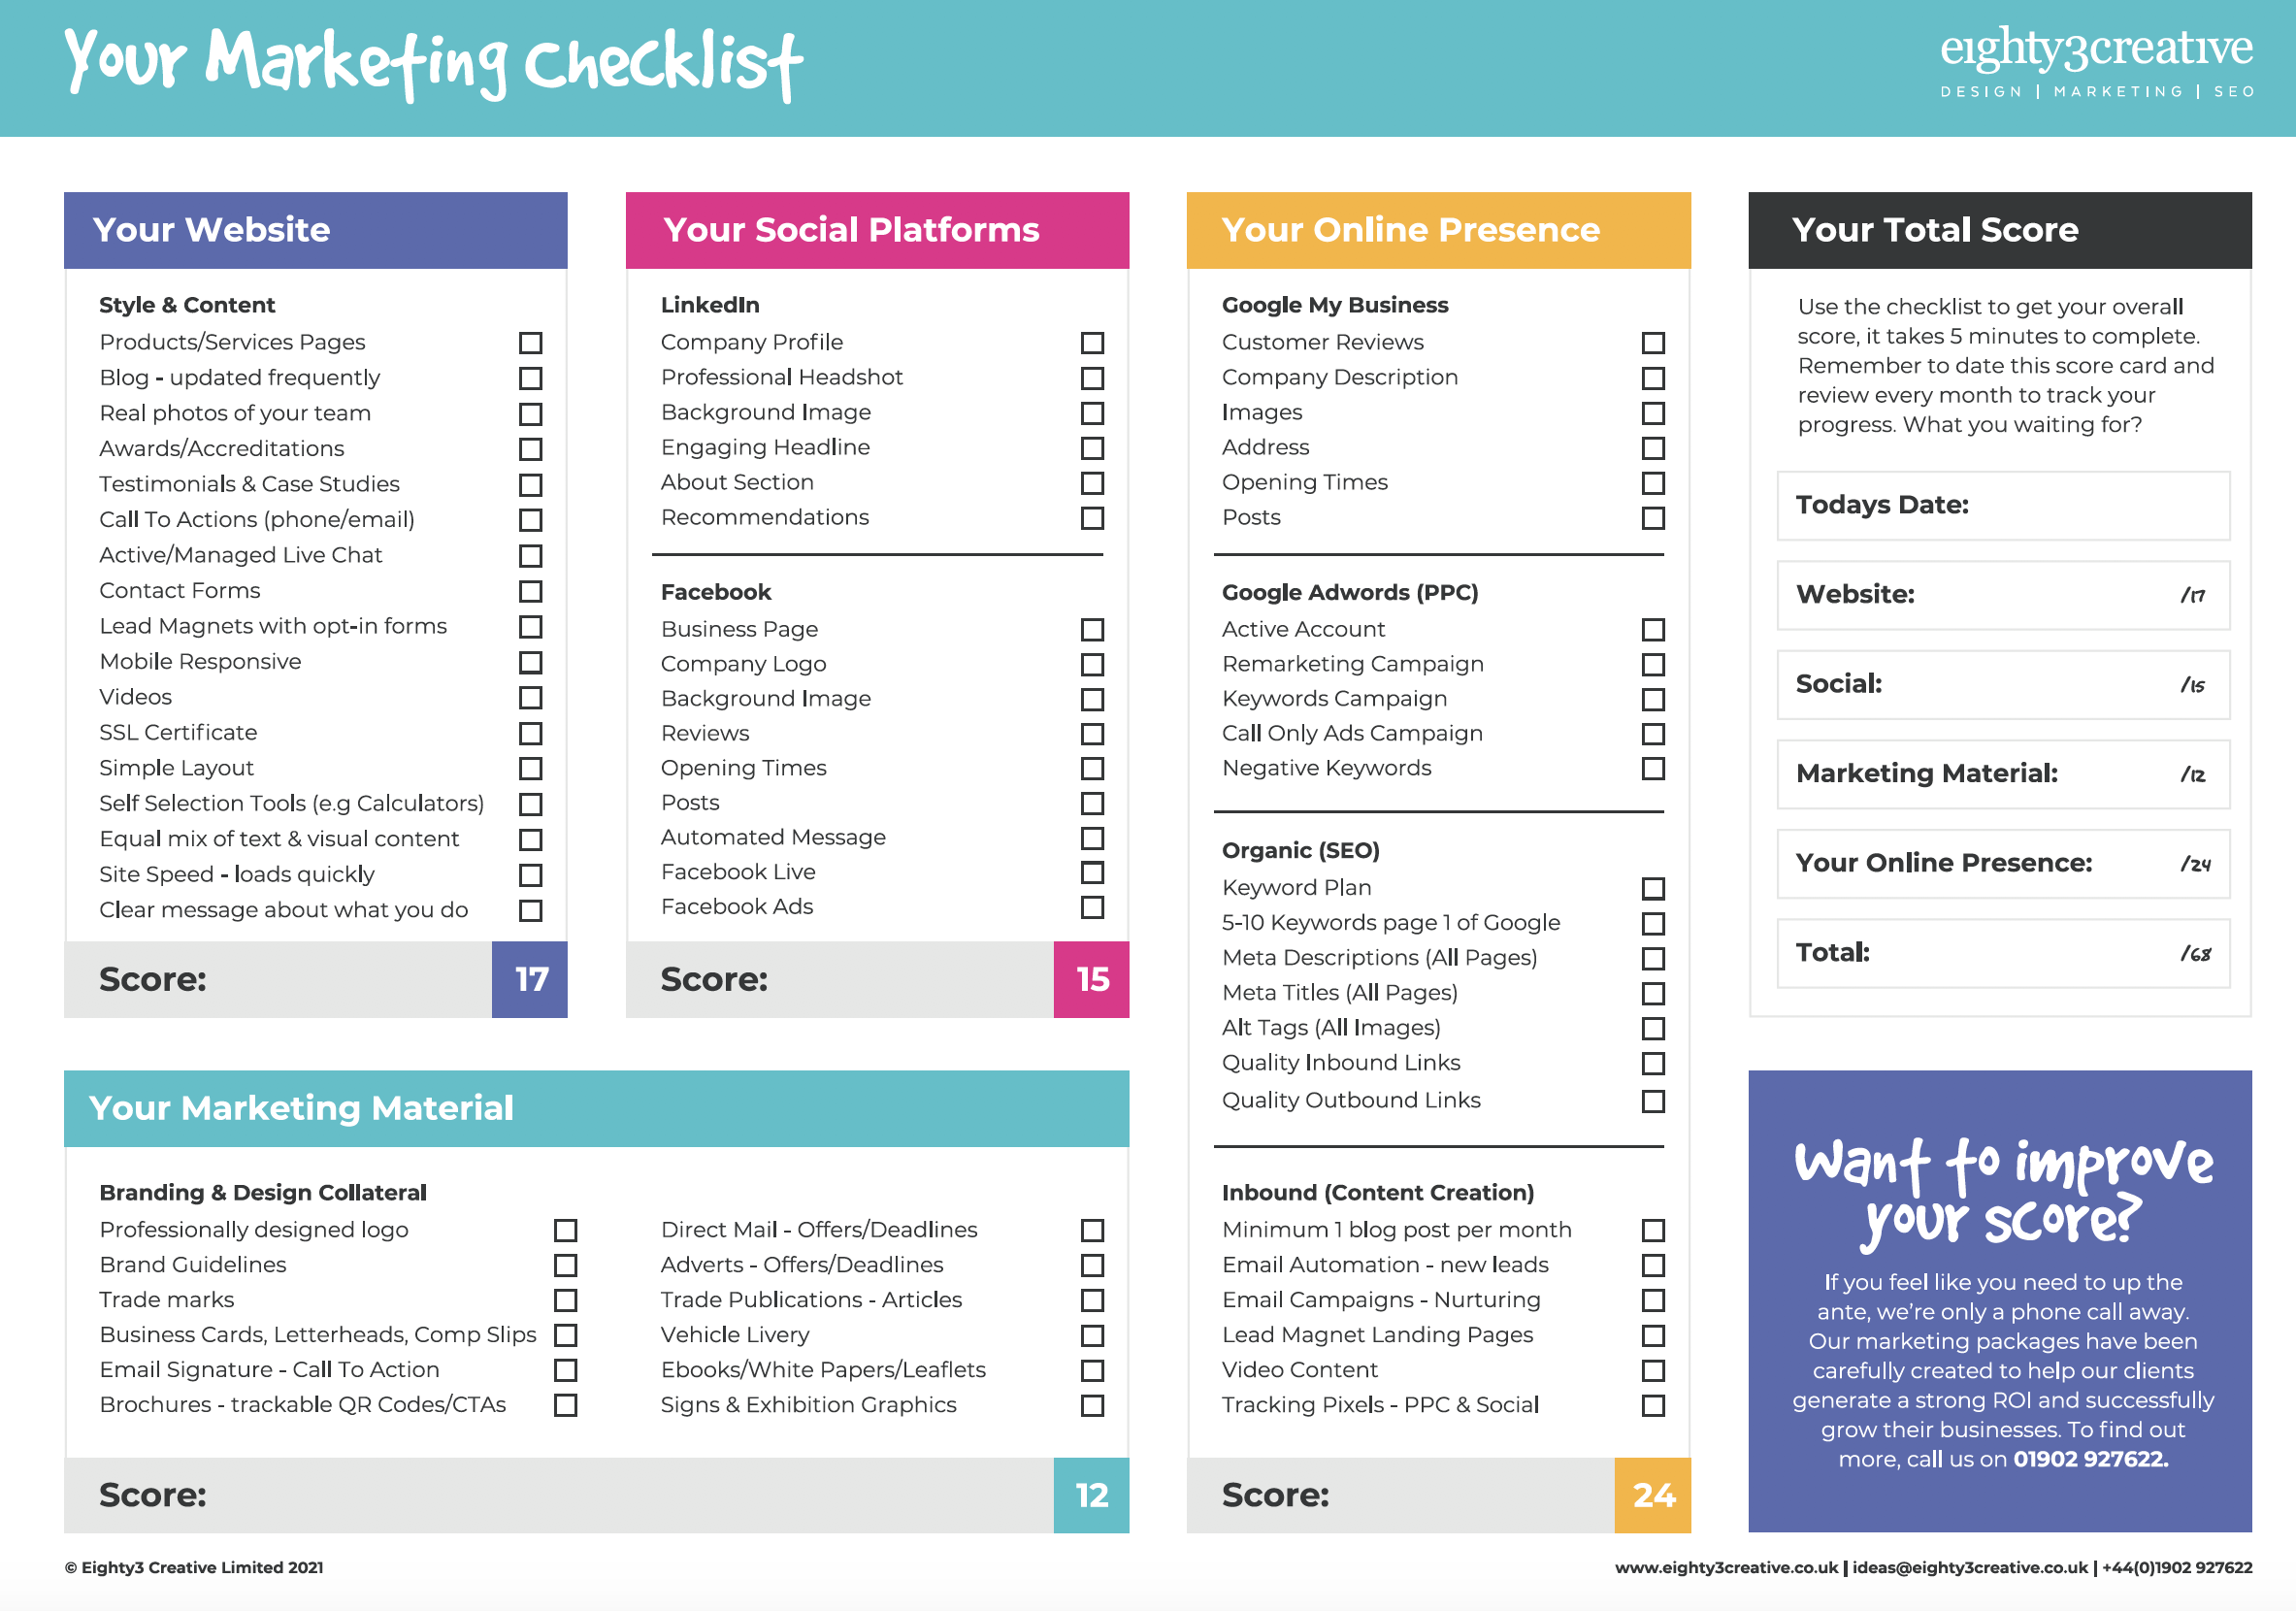 Marketing Checklist - eighty3creative